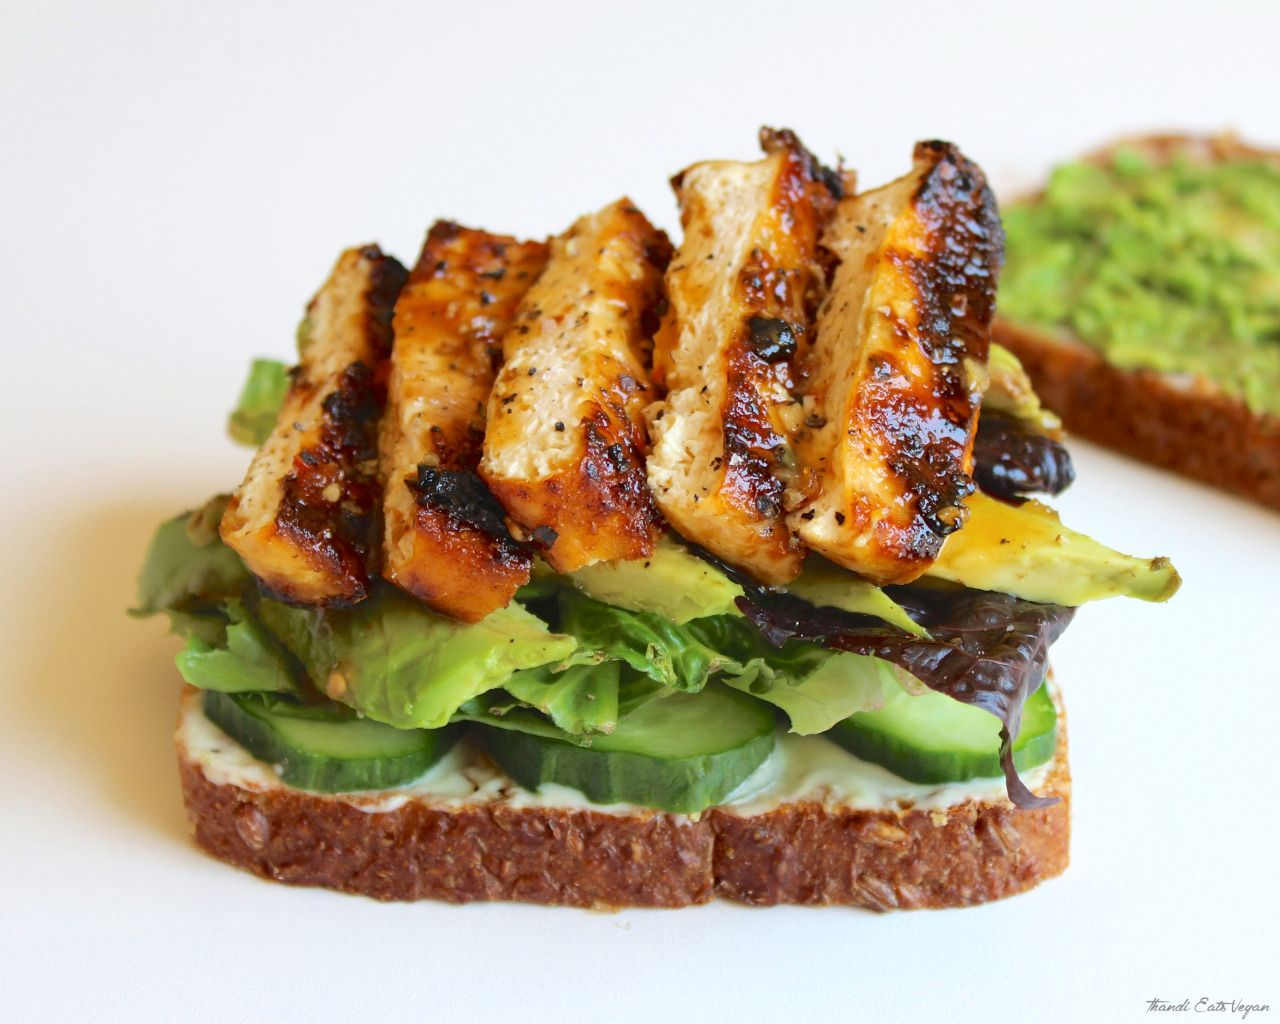 thandieatsvegan:  Grilled Sticky Tofu Sandwich Grilled firm tofu served on whole-grain bread with avocado, mixed romaine lettuce and cucumber. Thandi Eats Vegan| Instagram